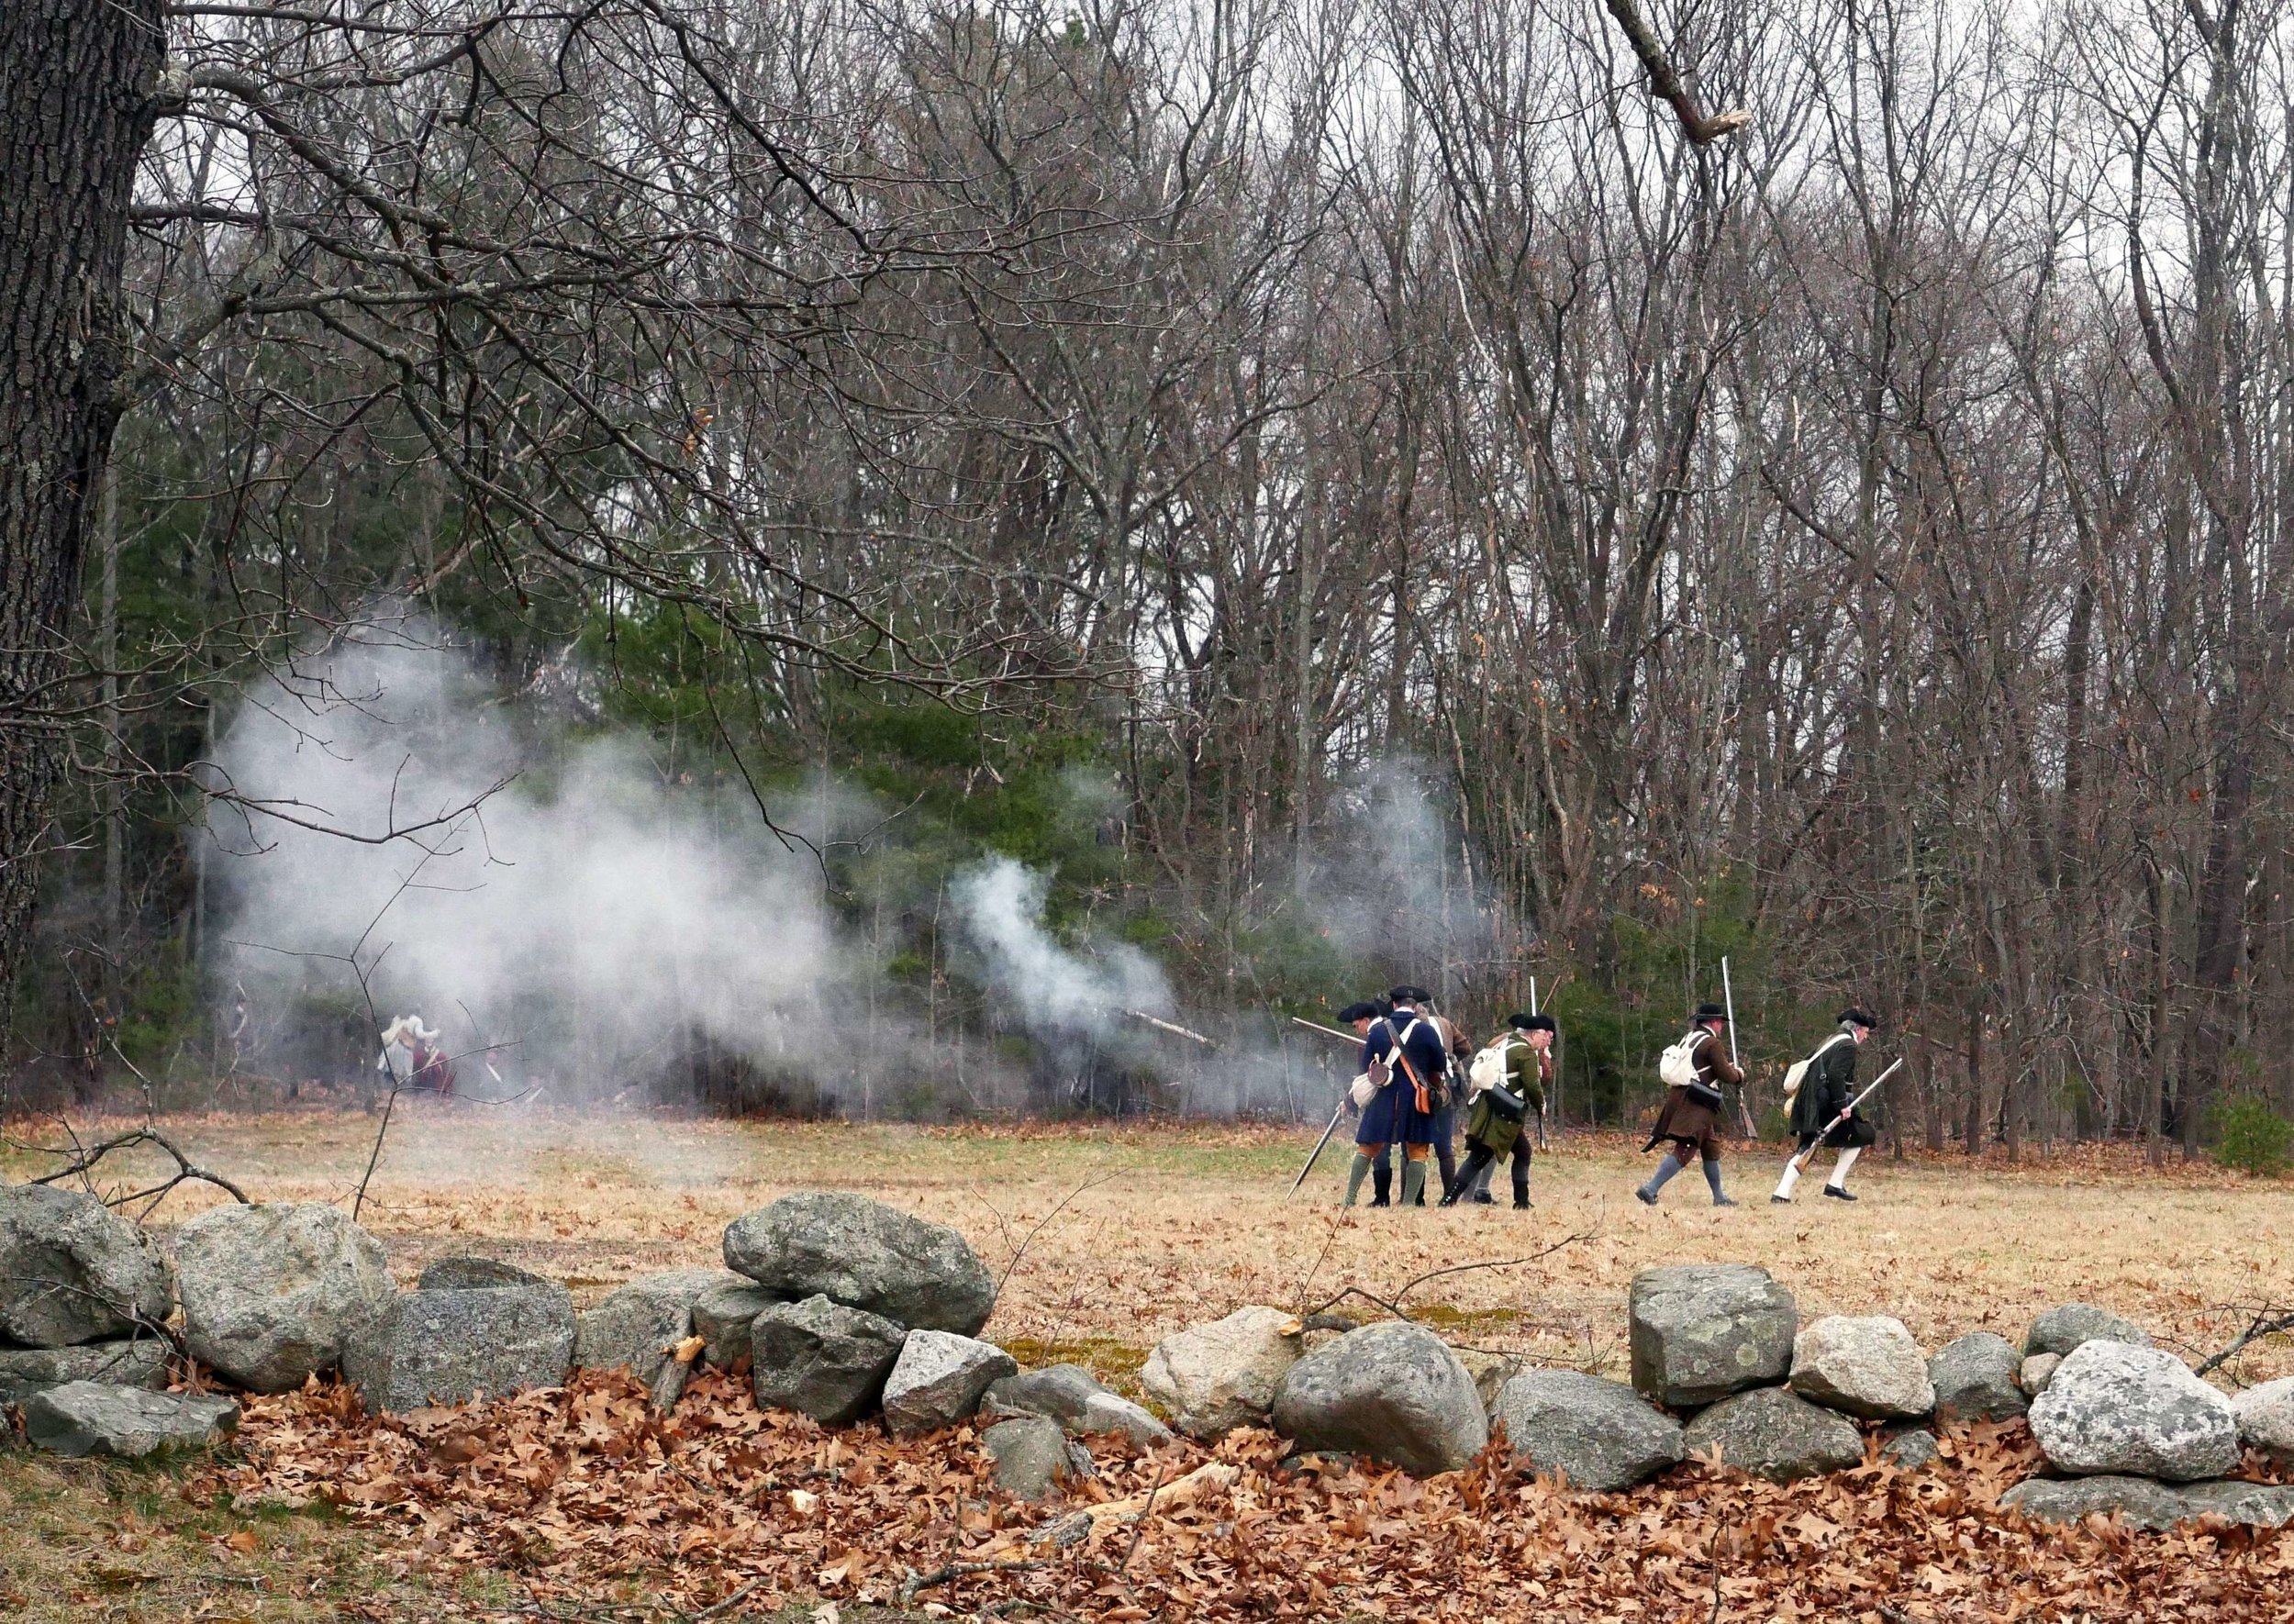 Lincoln, MA - April 14th, 2018 - Hannes Klein leads his men from the fourth battalion of the Lincoln Minuteman Company away from enemy fire during the Battles of Lexington and Concord. The reenactors do not use bullets in their guns, instead relying on powder to convey the shots.